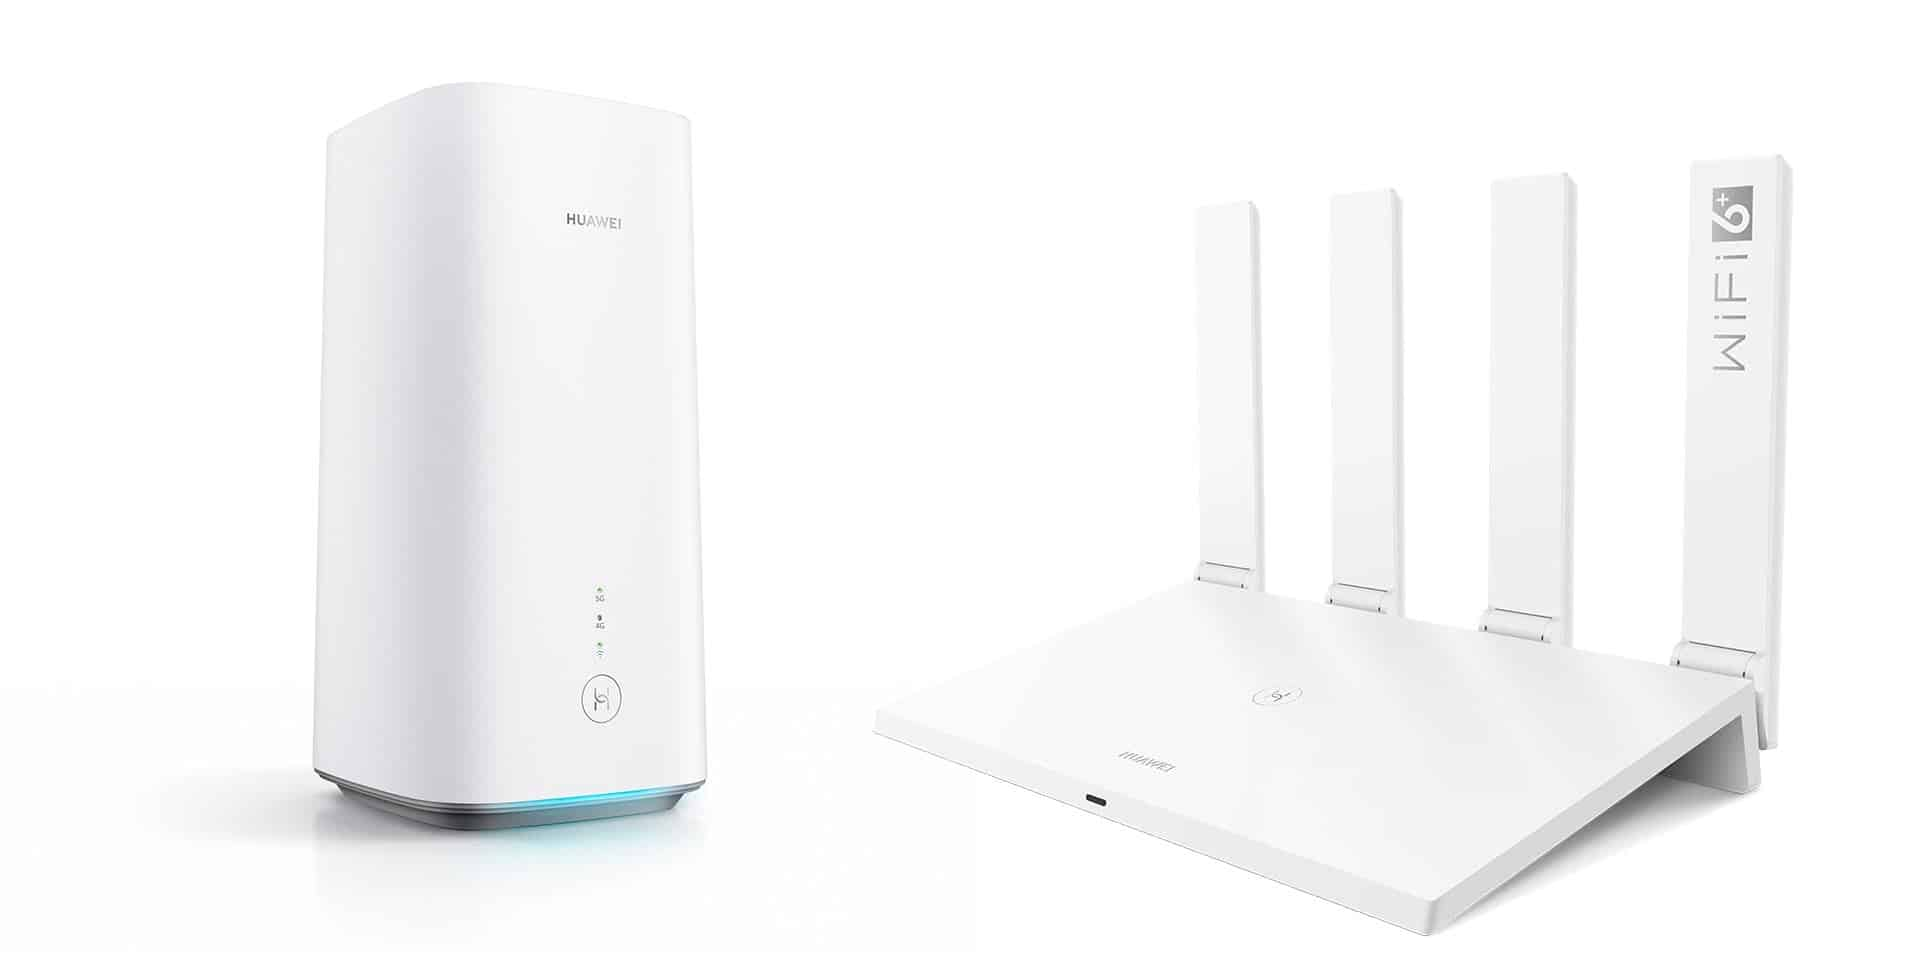 Huawei 5G CPE Pro 2 and Wi-Fi AX3 officially released